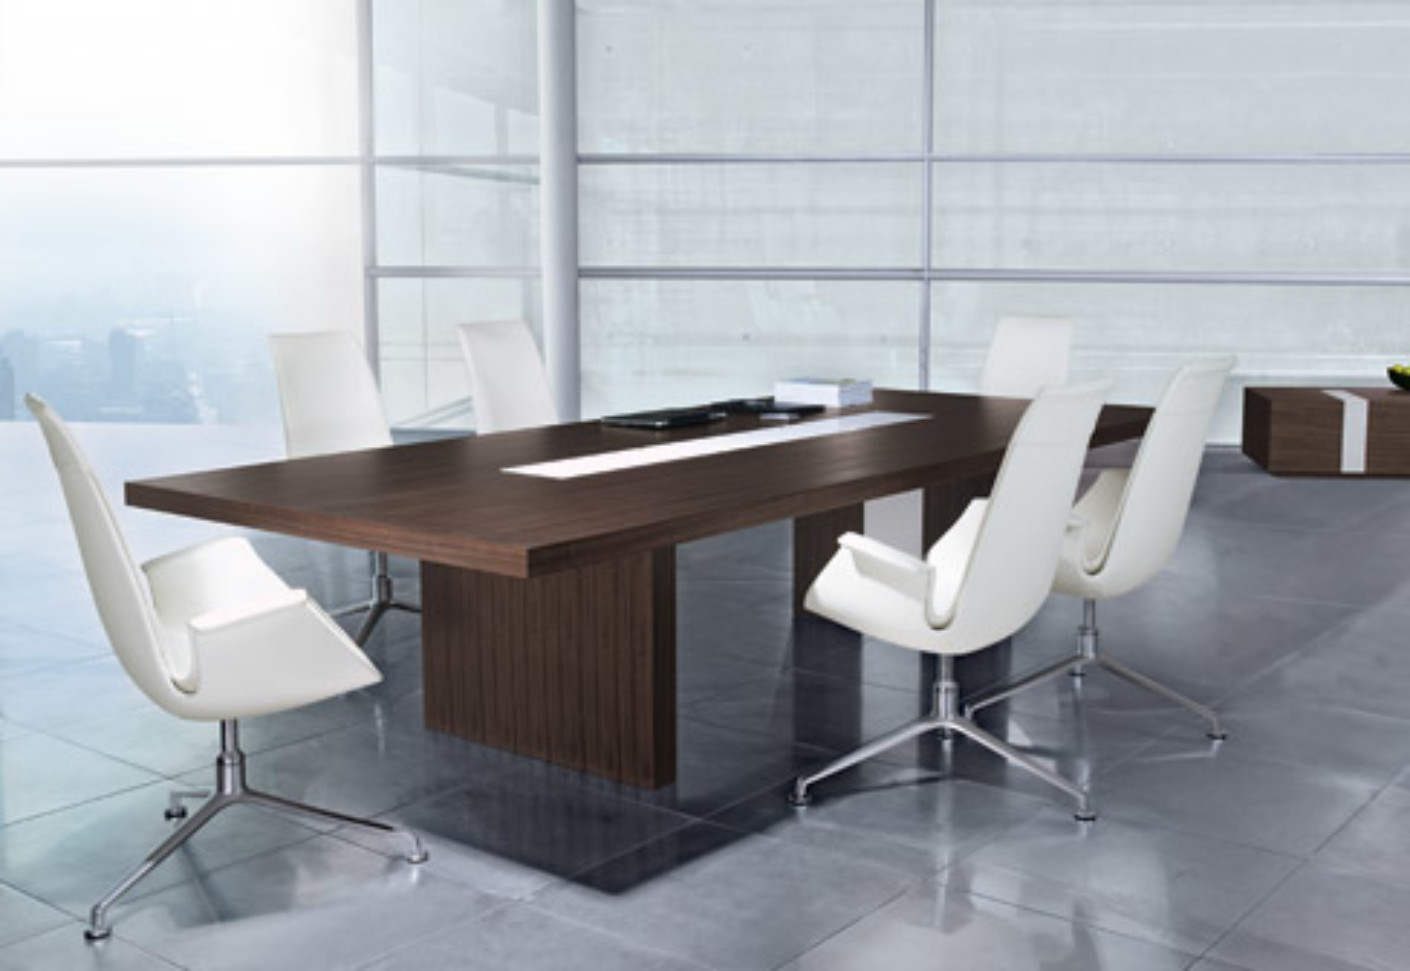 Ceoo conference table by walter knoll stylepark for Center table design for office